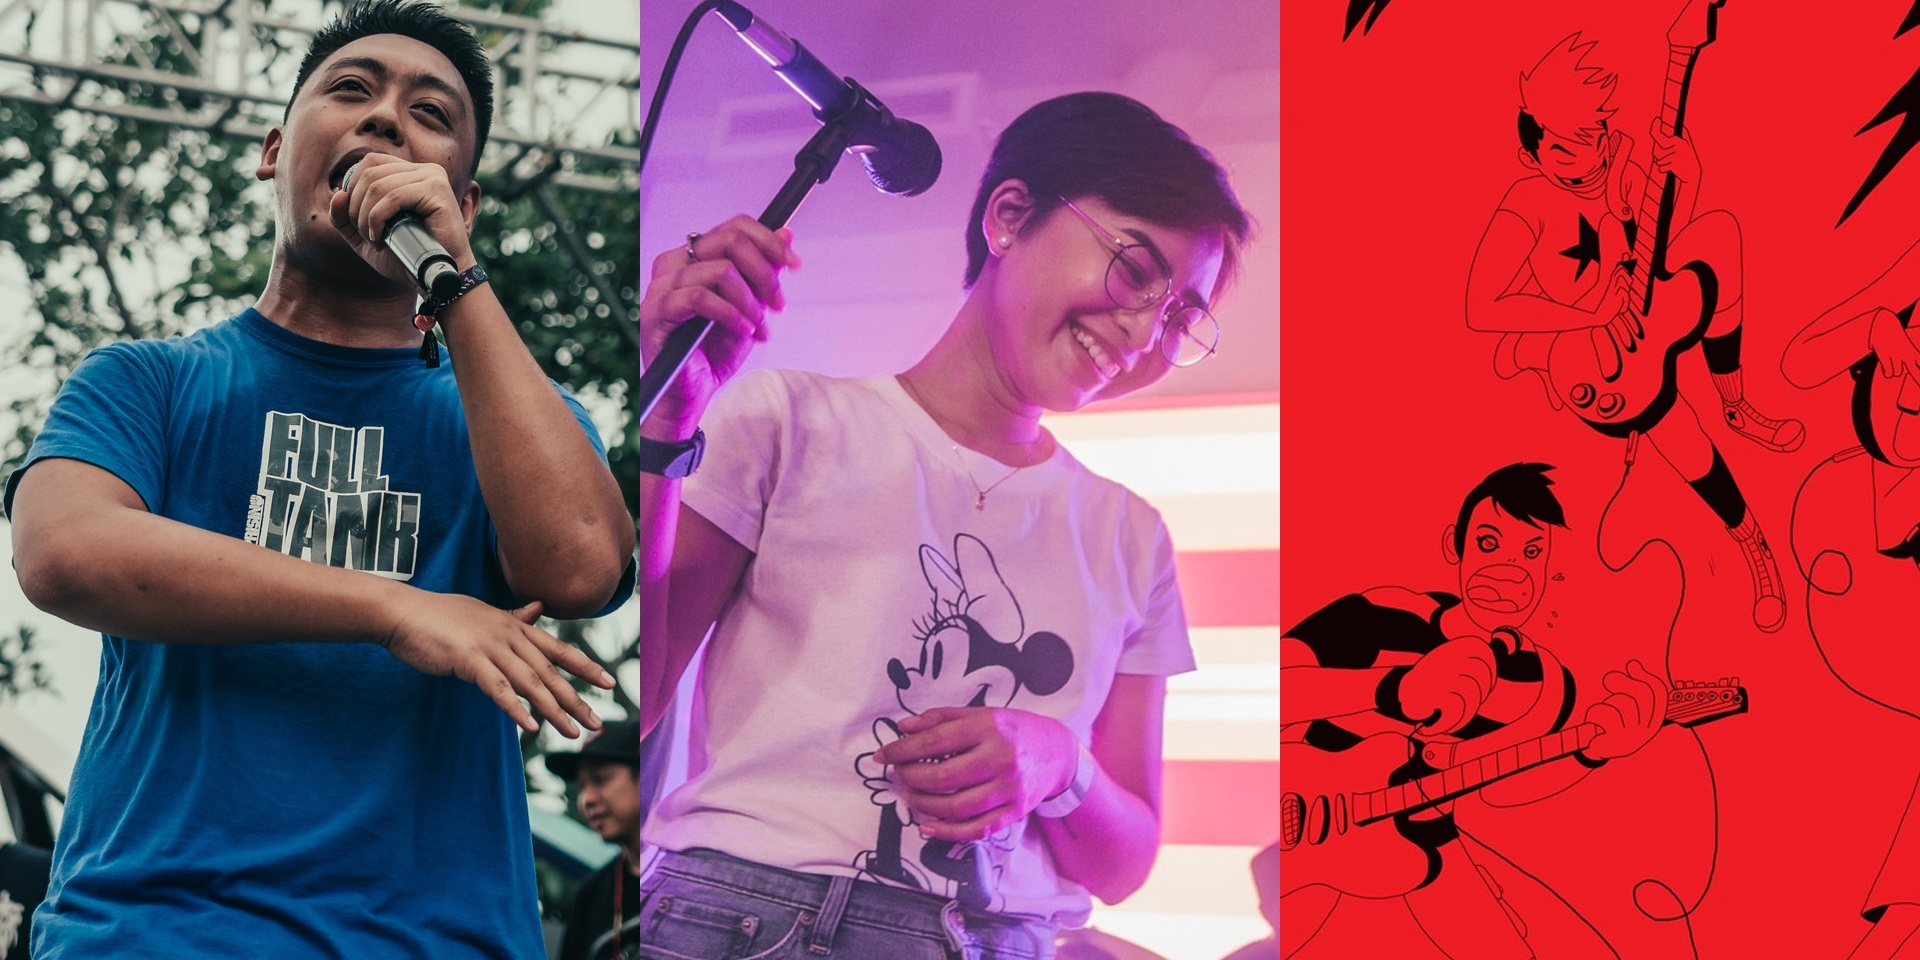 BLKD x Calix, Ang Bandang Shirley, The Ravelos, and more to perform at benefit gig KOLAborasyon